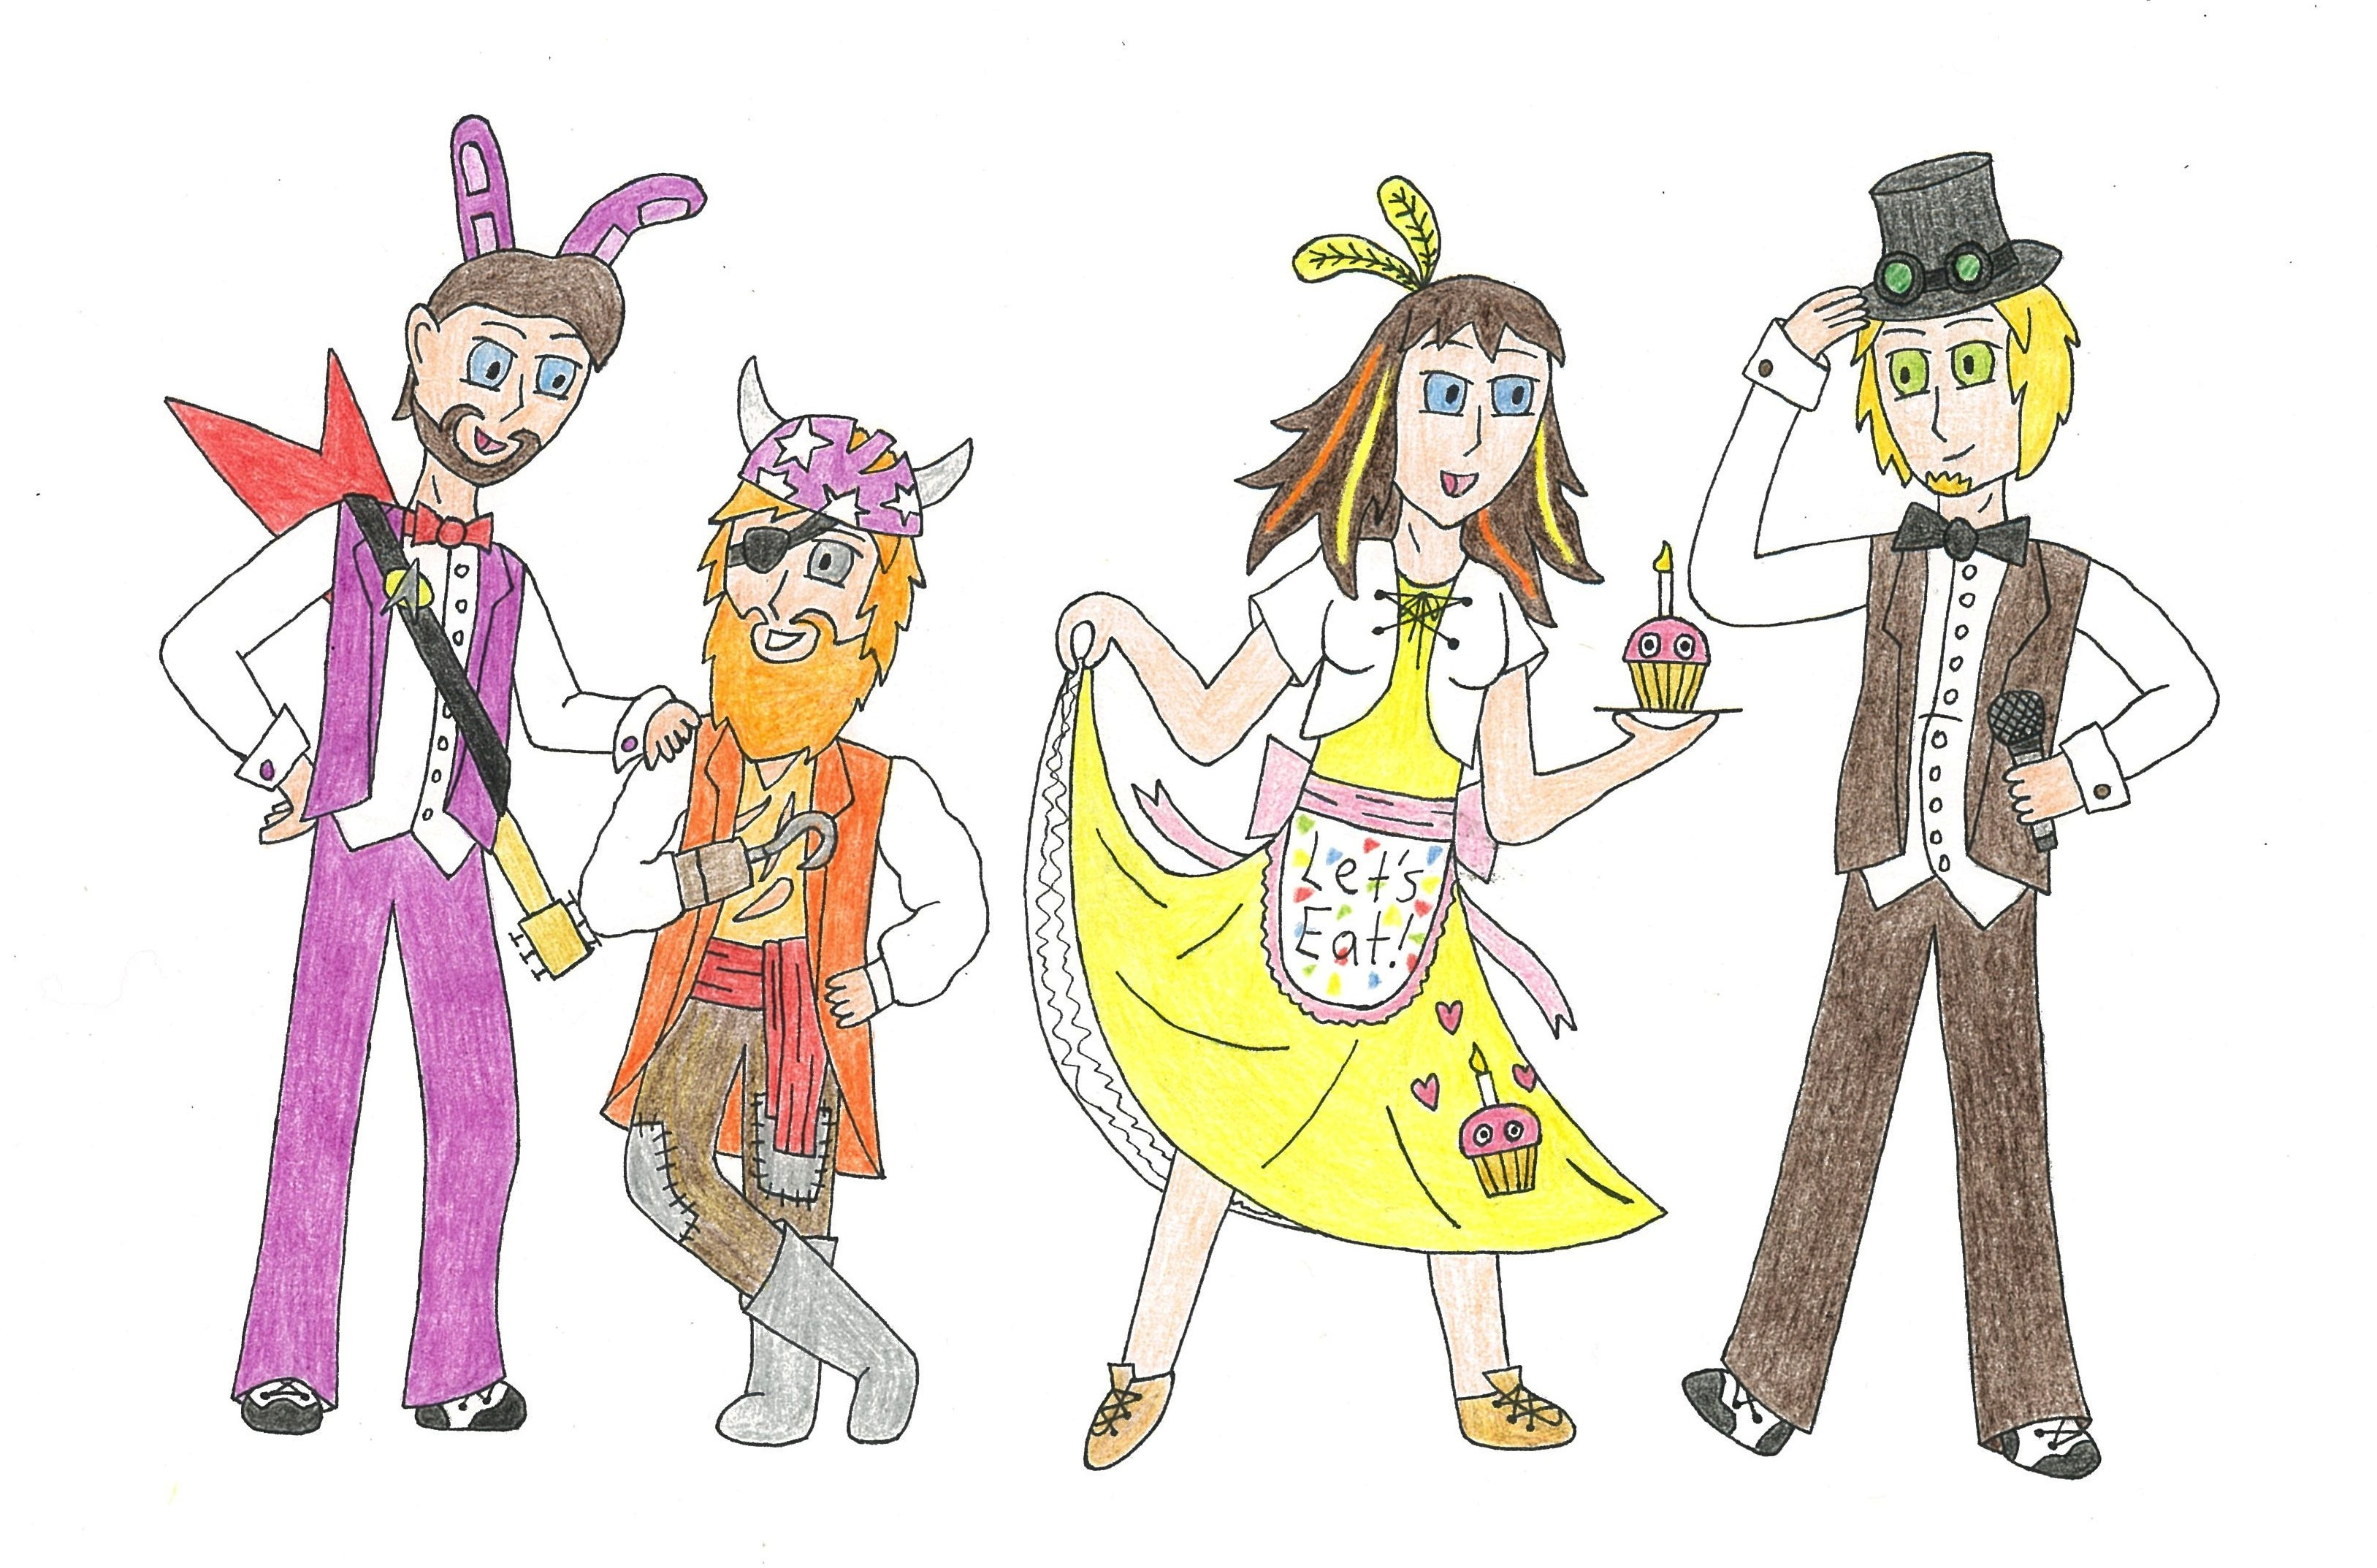 Dress up five nights at freedys -  Emberthedragonlord Five Nights At Freddy S Yogscast Dress Up By Emberthedragonlord